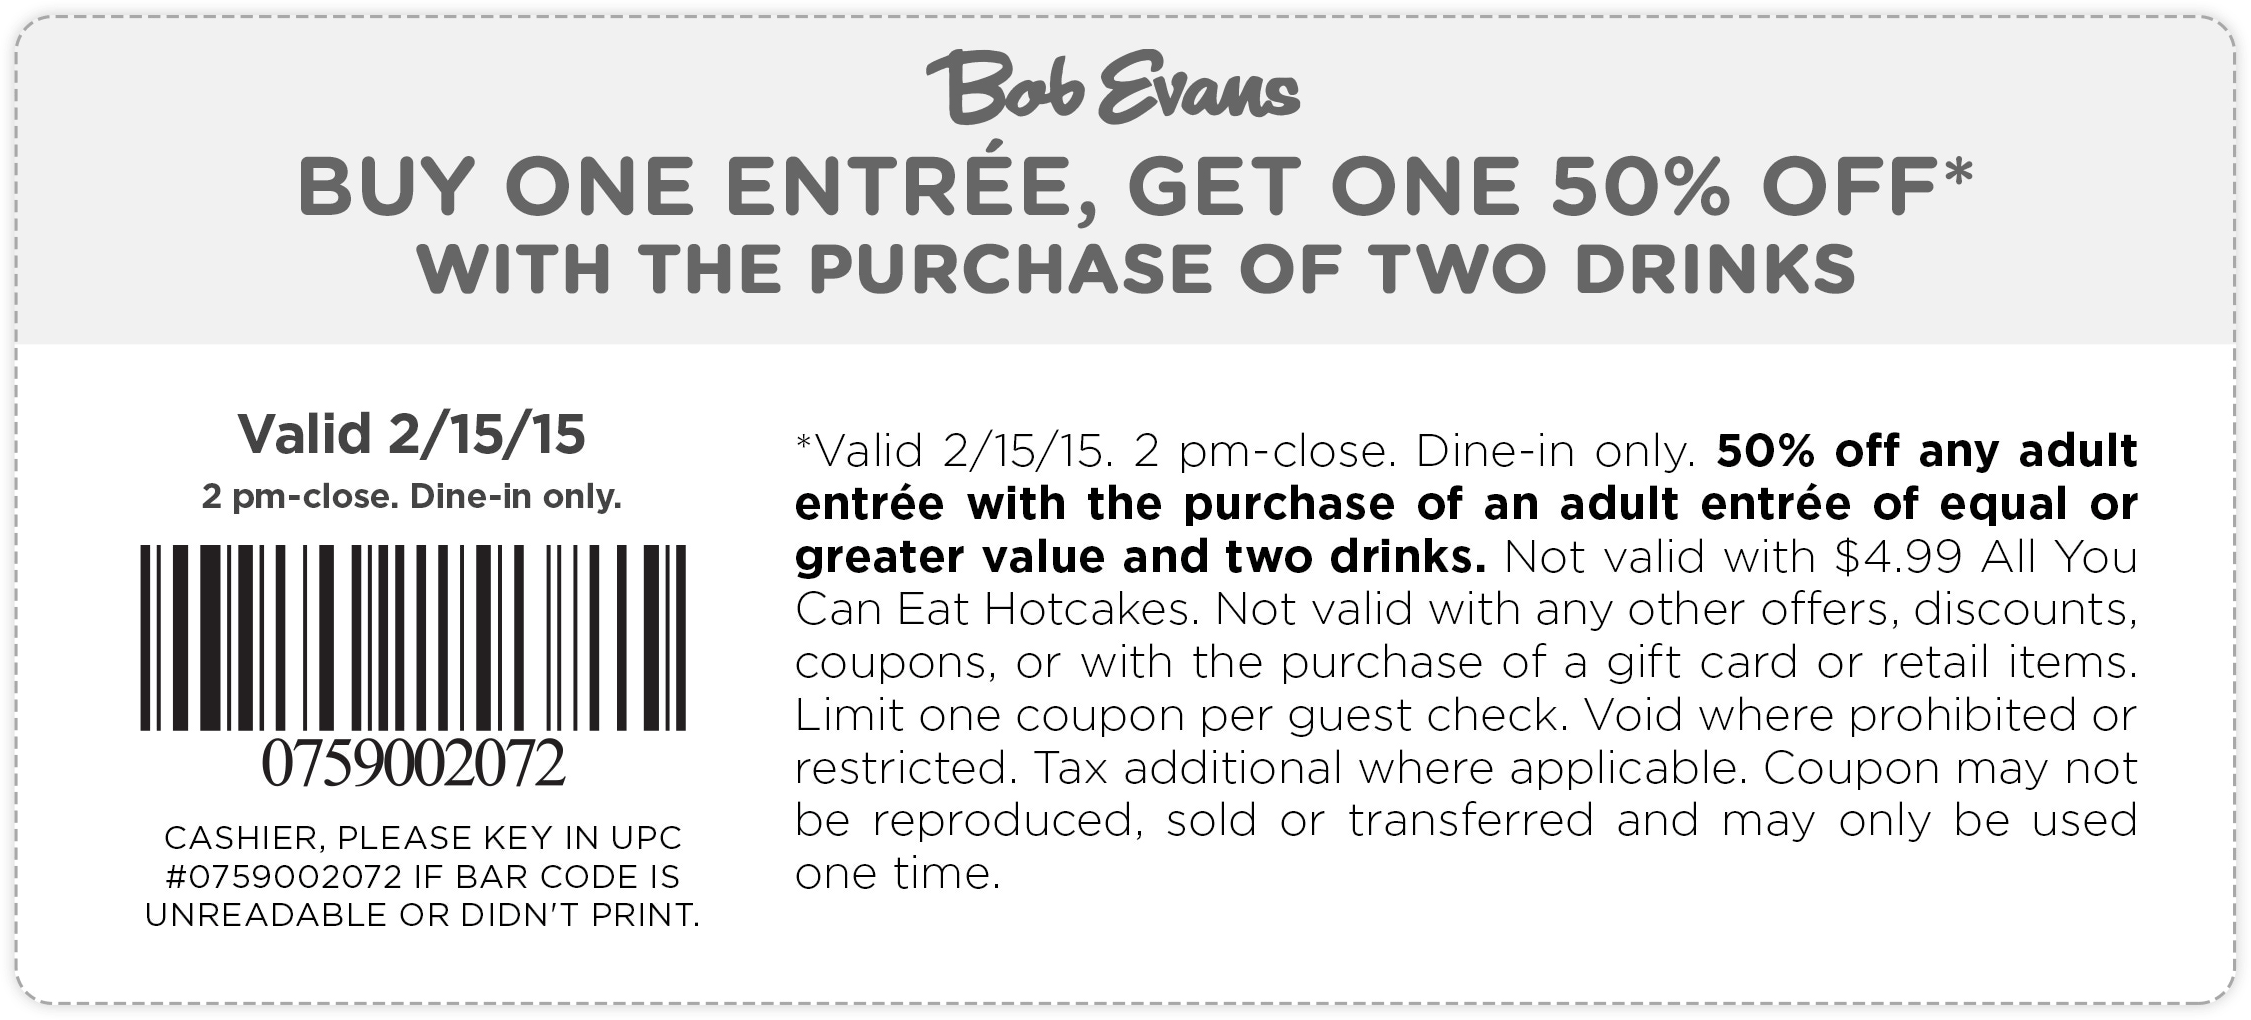 Bob Evans Coupon November 2018 Second entree 50% off today at Bob Evans